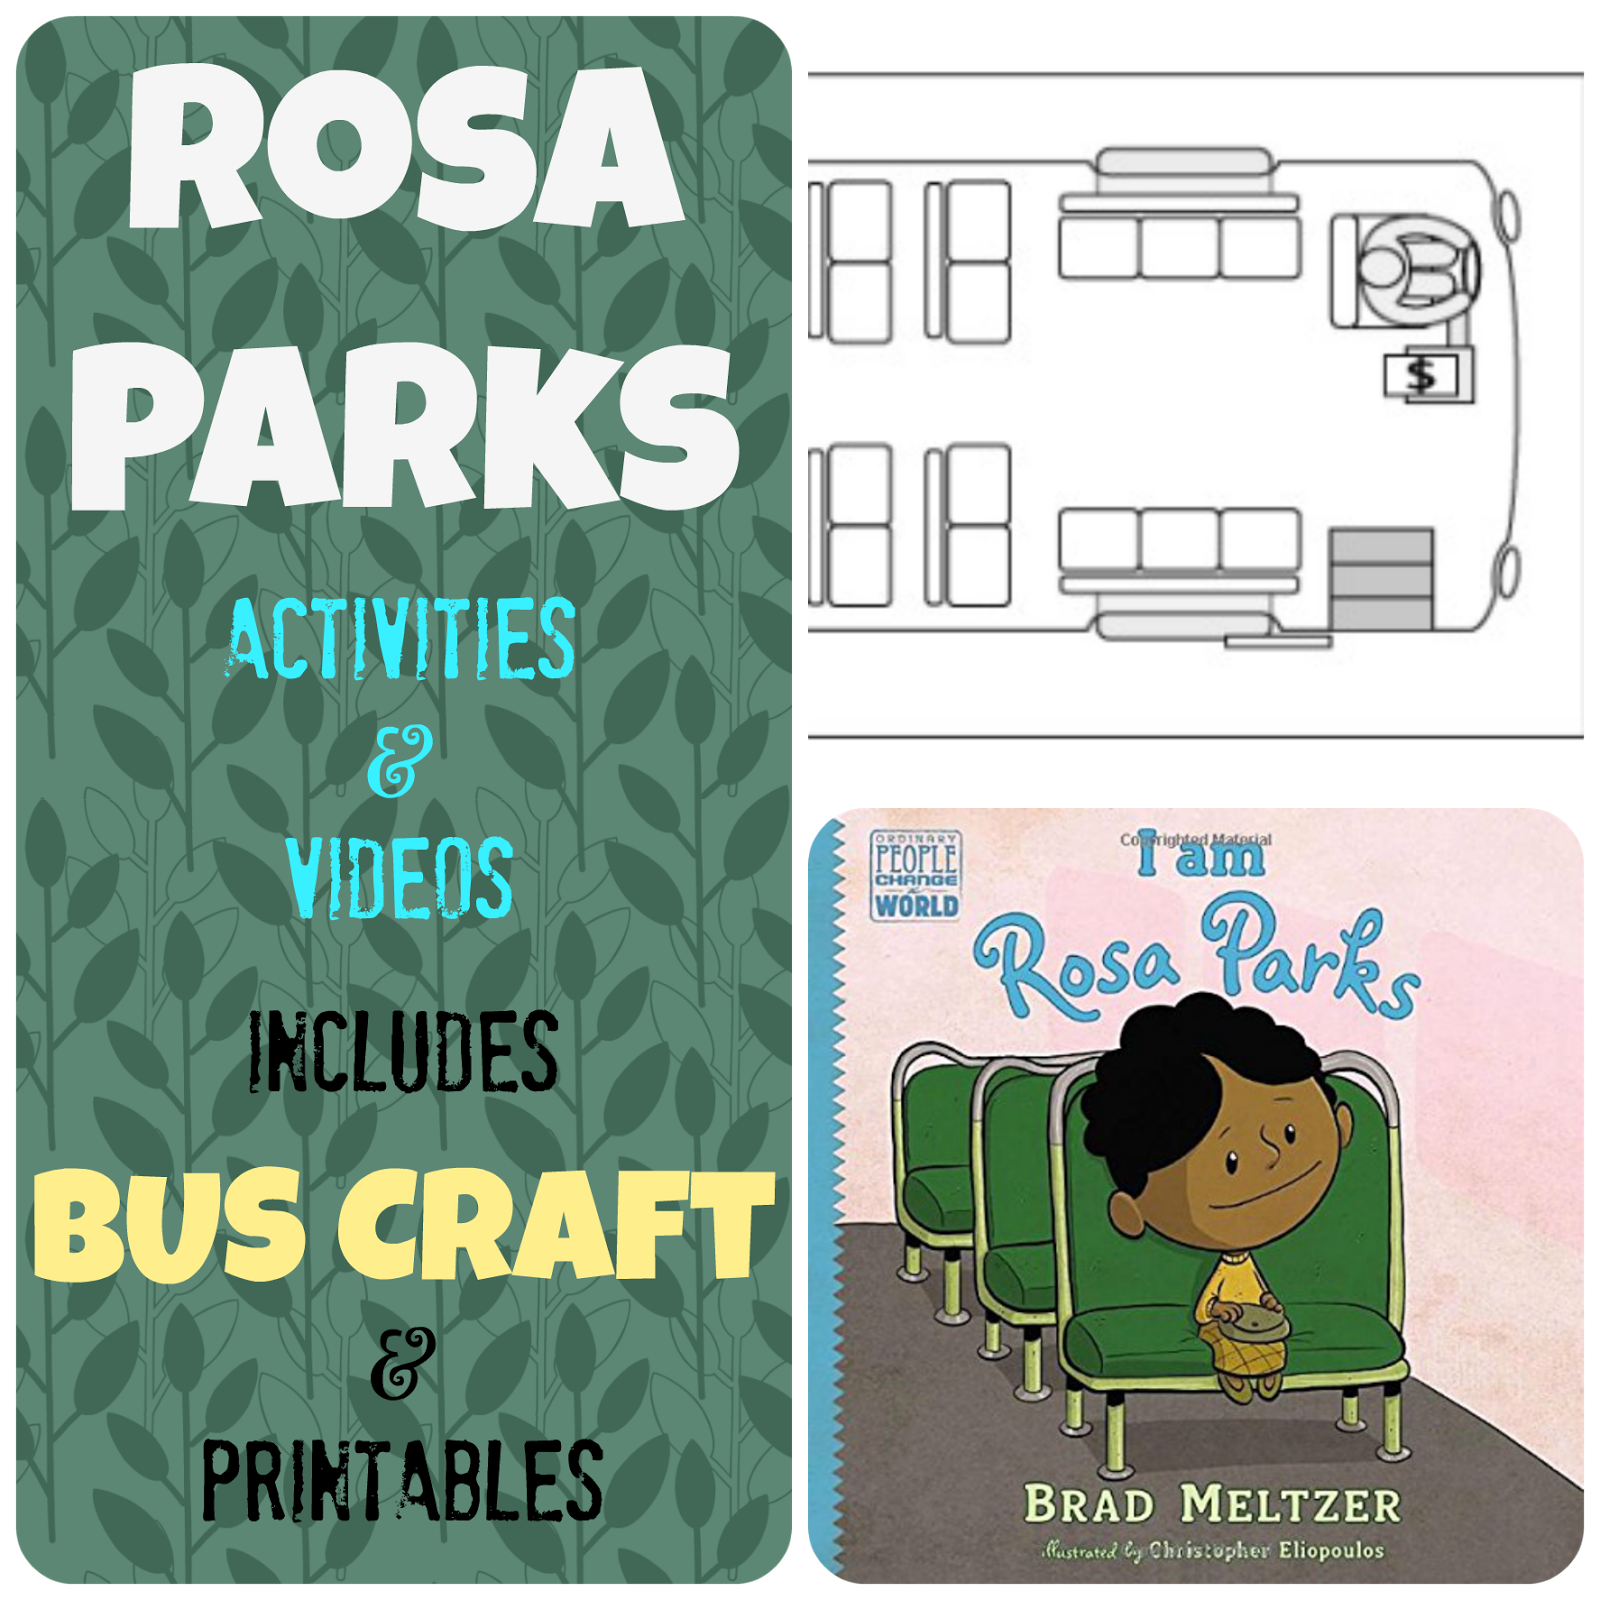 Rosa Parks Bus Story Videos And Activities